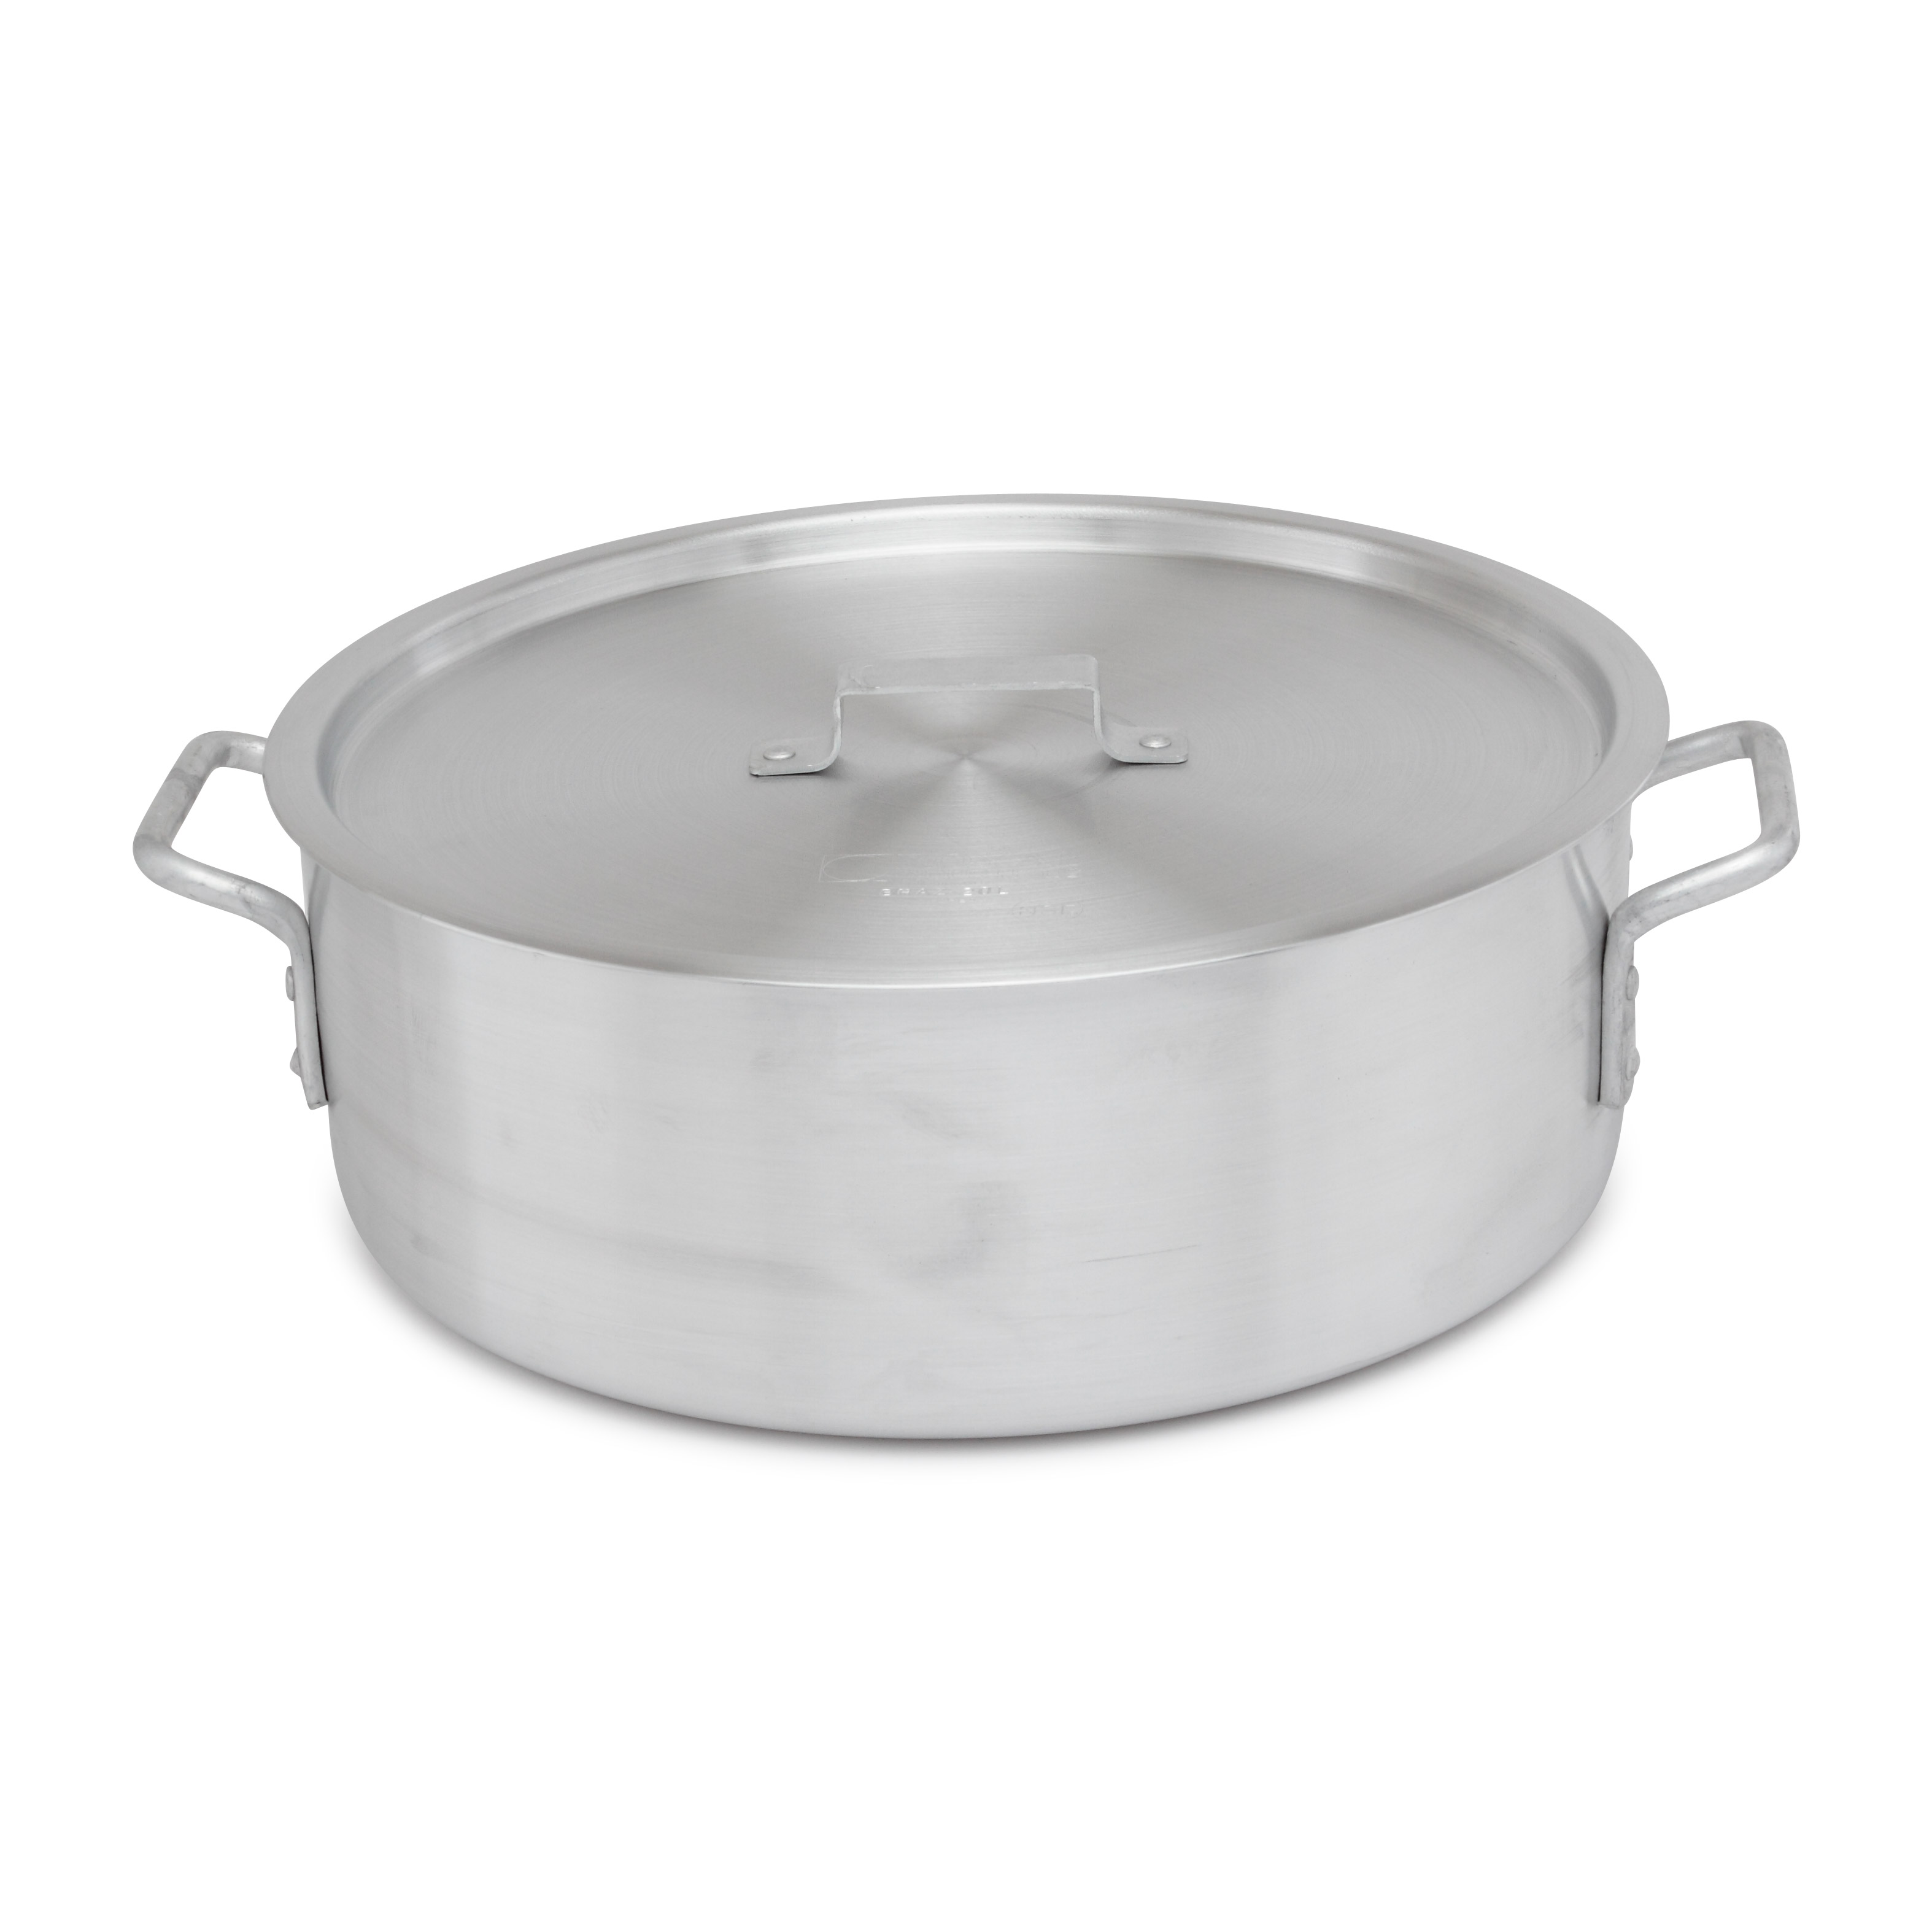 Royal Industries ROY BRAZ SW 20 brazier pan